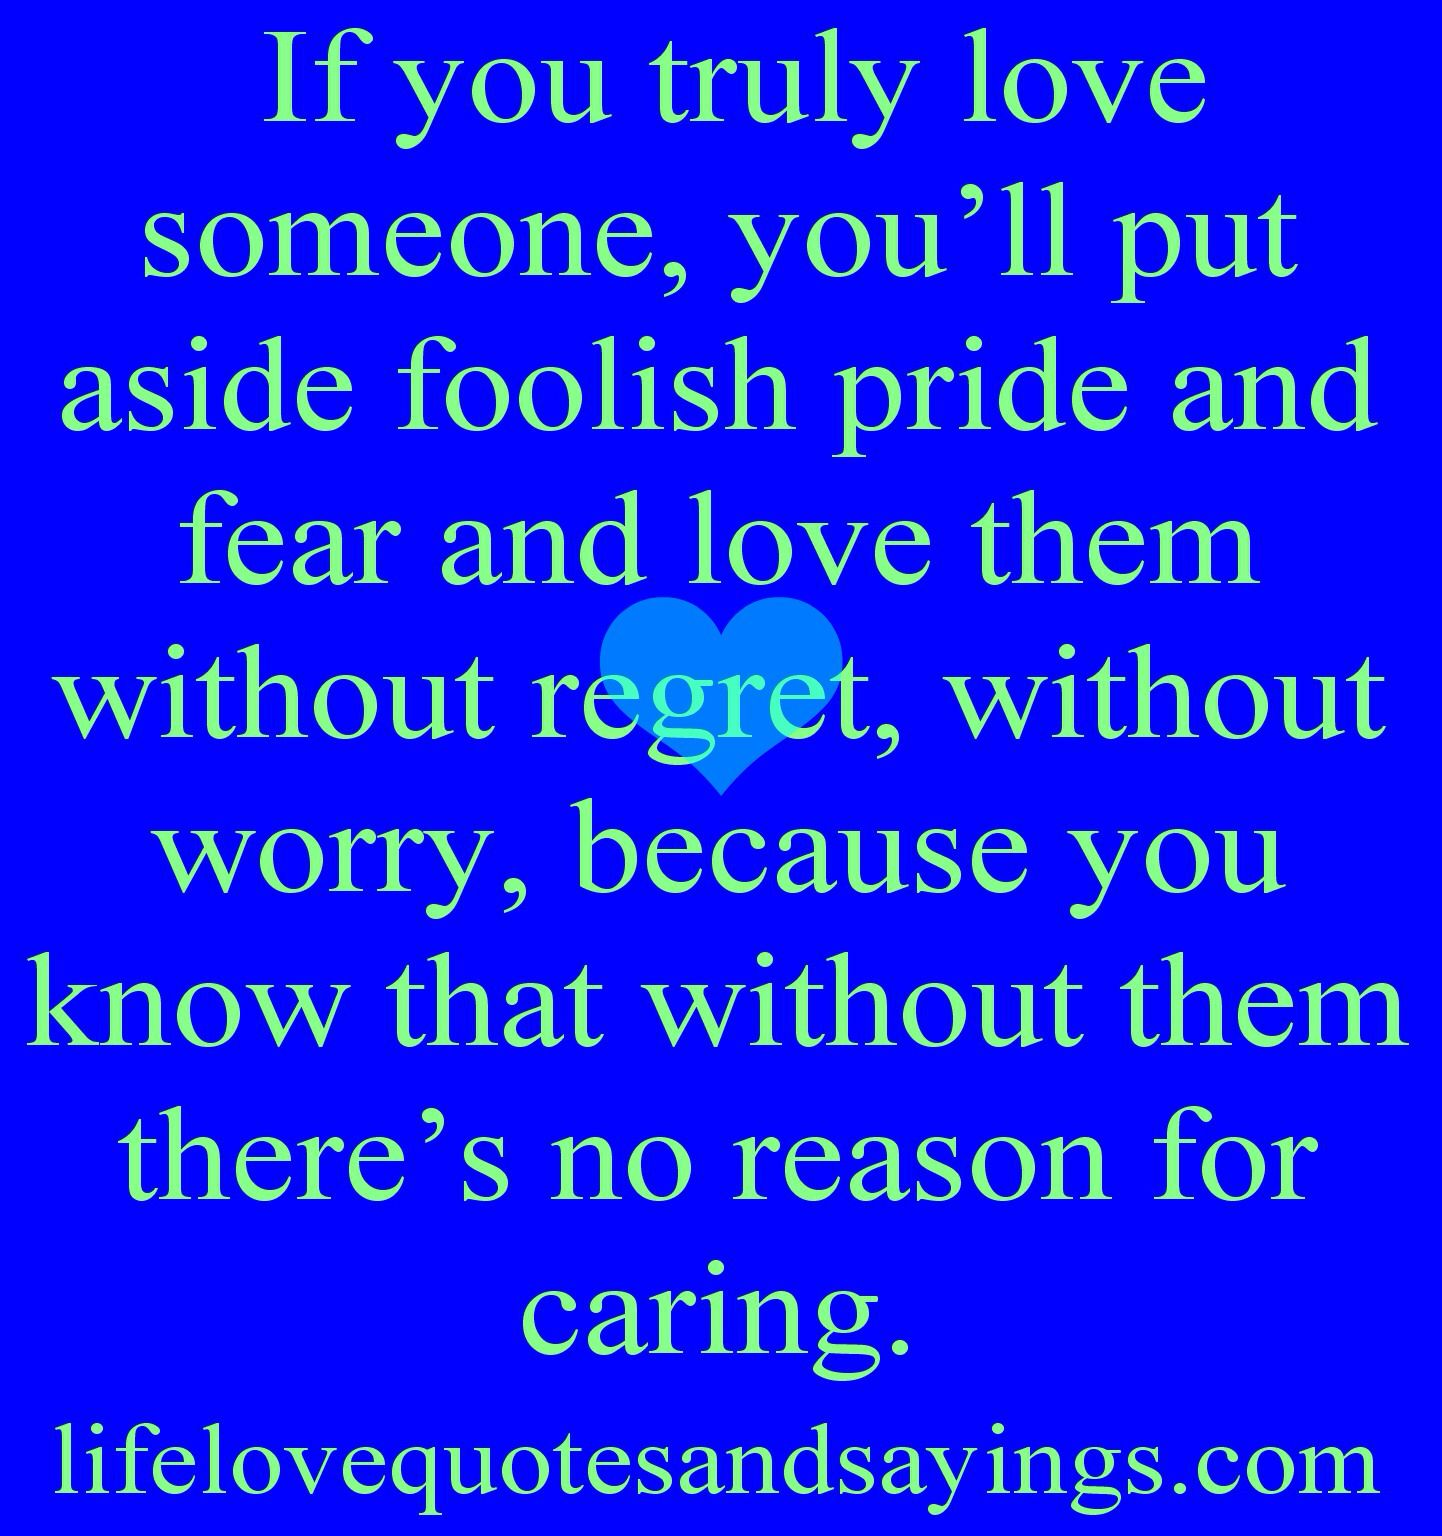 Quotes About Loving Someone Deeply: If You Truly Love Someone Quotes. QuotesGram